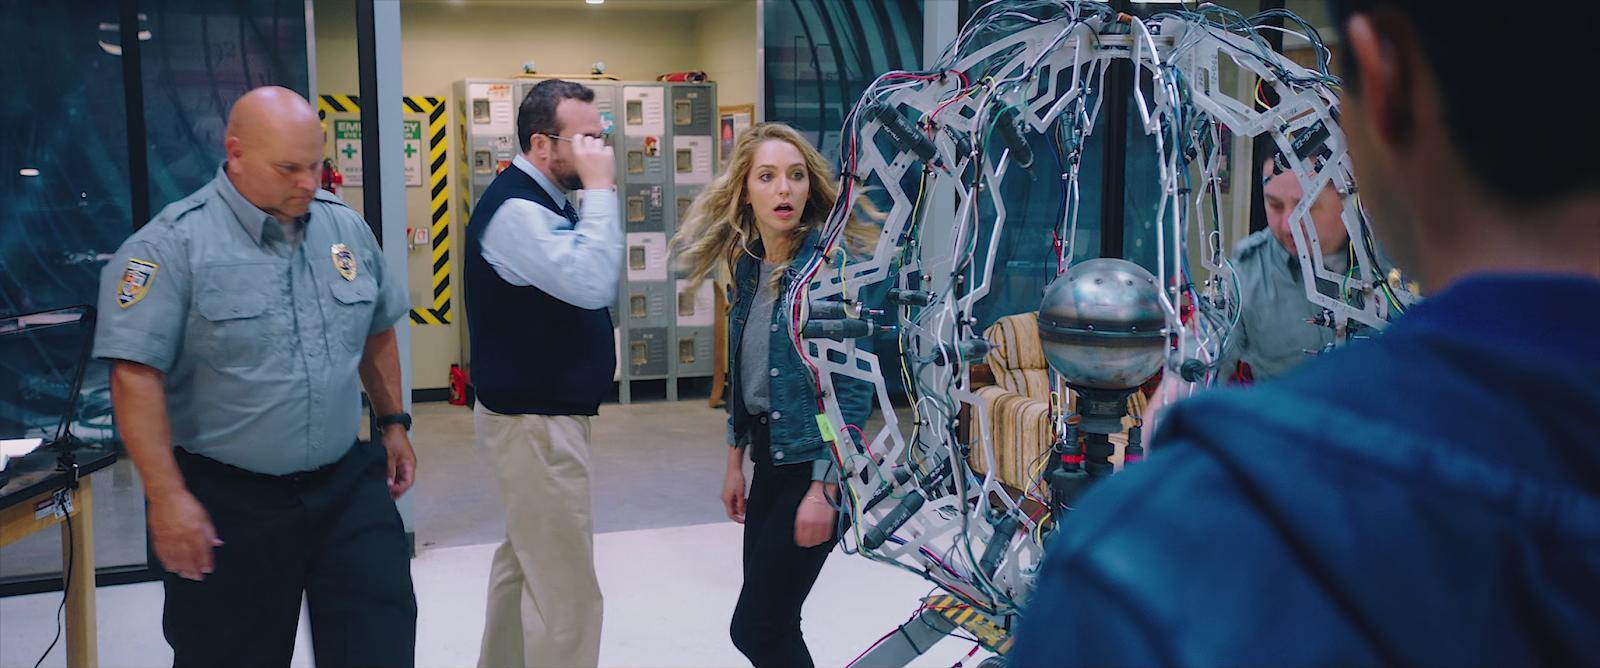 Jessica Rothe and Steve Zissis in Happy Death Day 2U (2019)